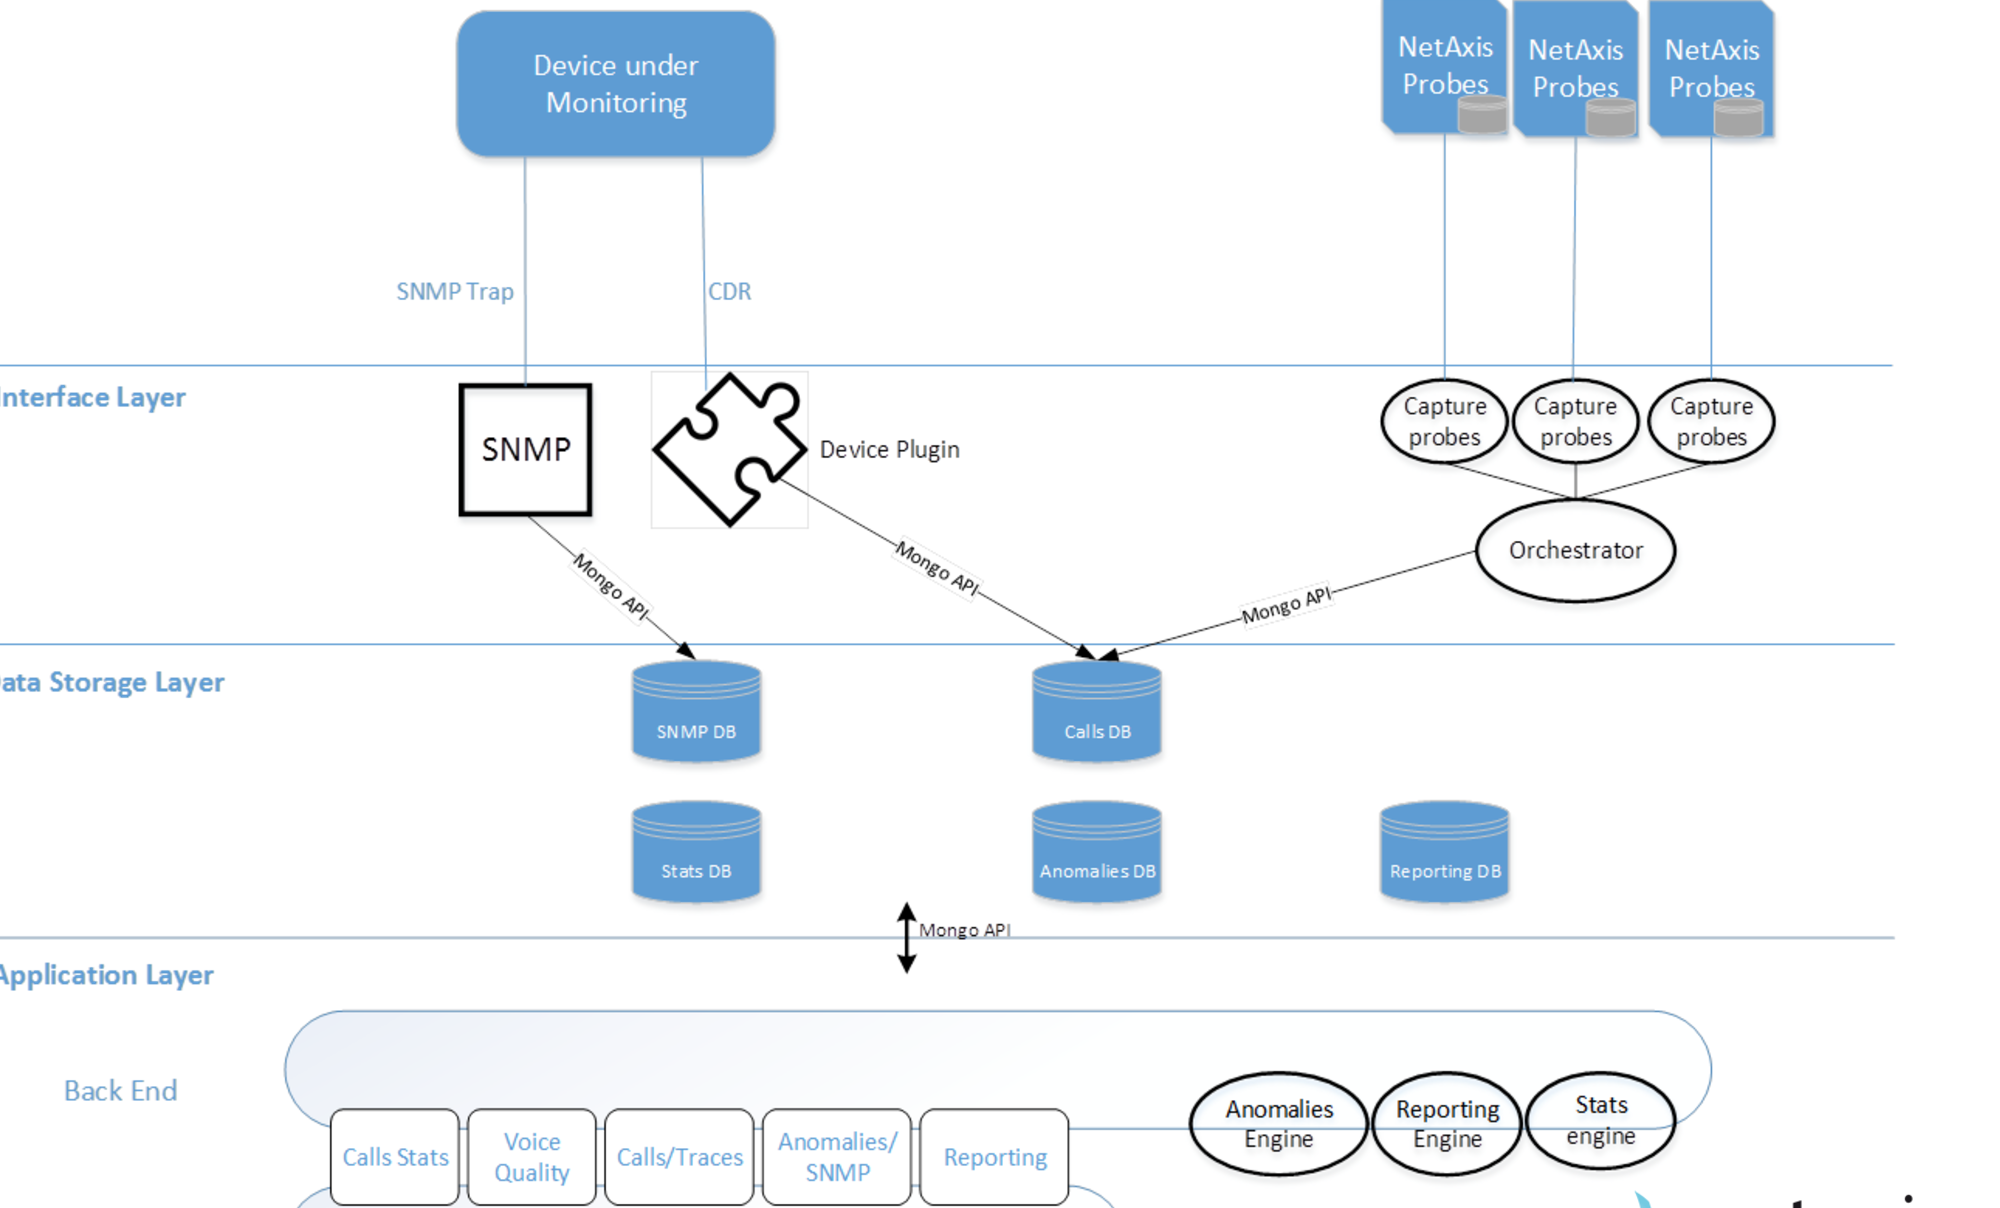 voip network monitoring gnTel choose Oracle Netaxis